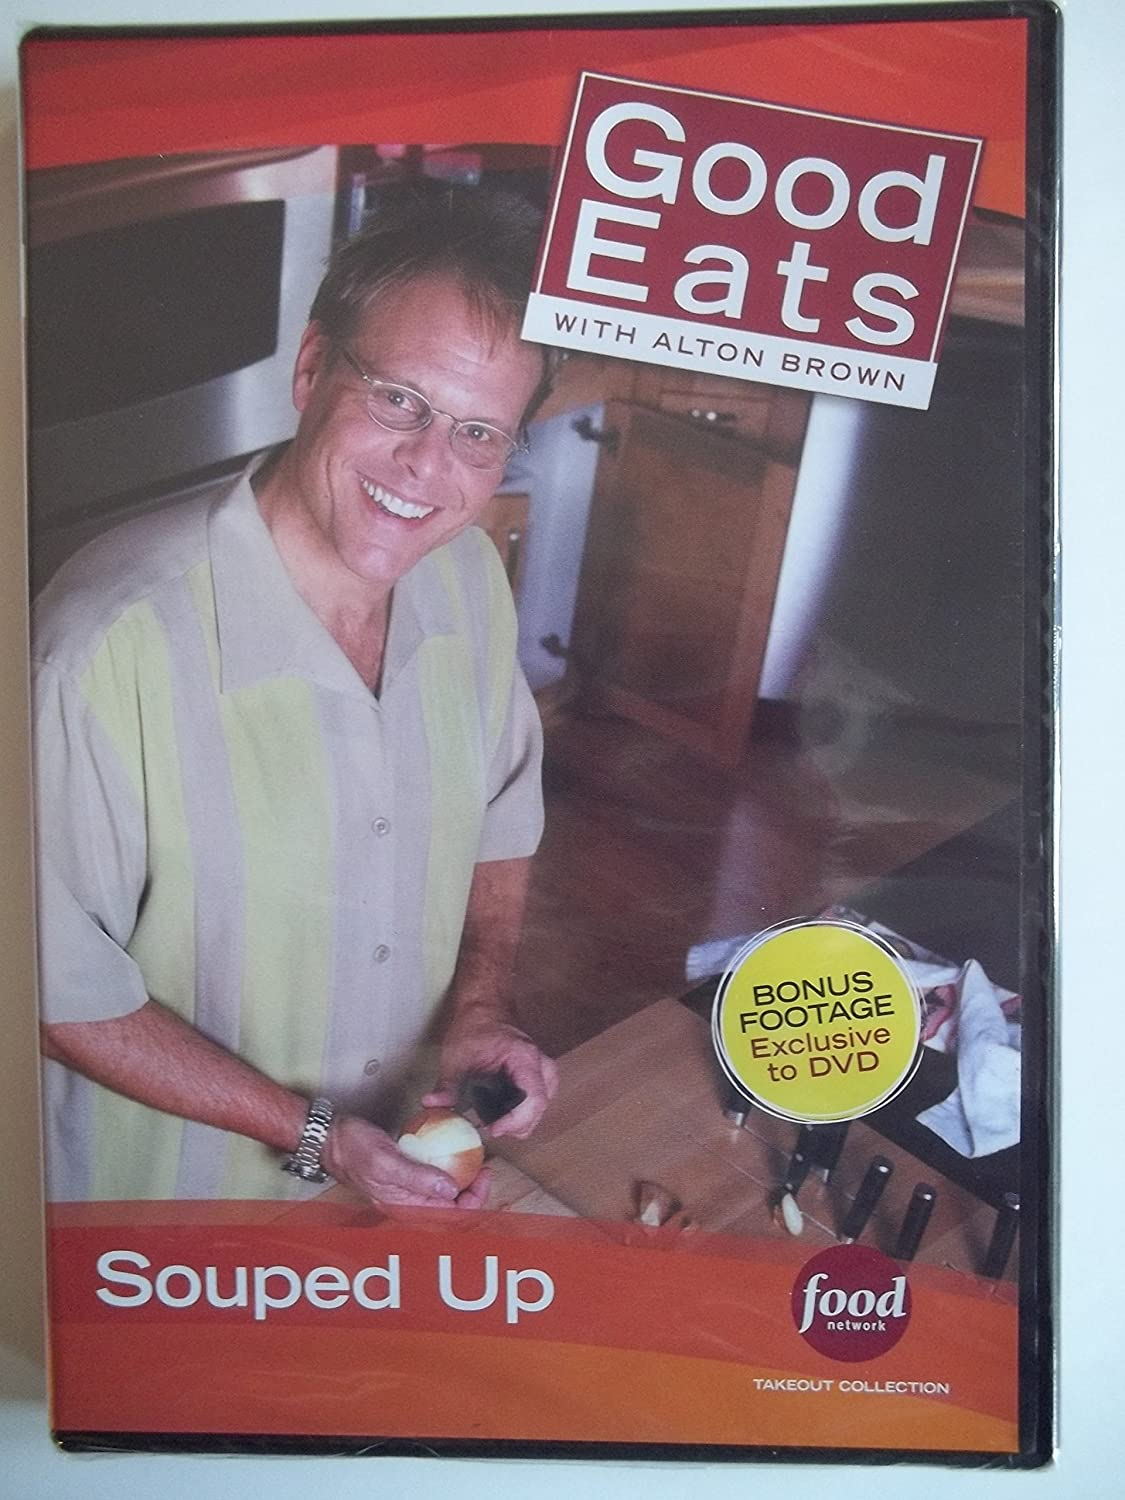 Food Network Takeout Collection DVD - Good Eats With Alton Brown - Souped Up - Includes BONUS FOOTAGE Plus Pressure Cooker Broth / True Brew 4 Take Stock / Soup's On